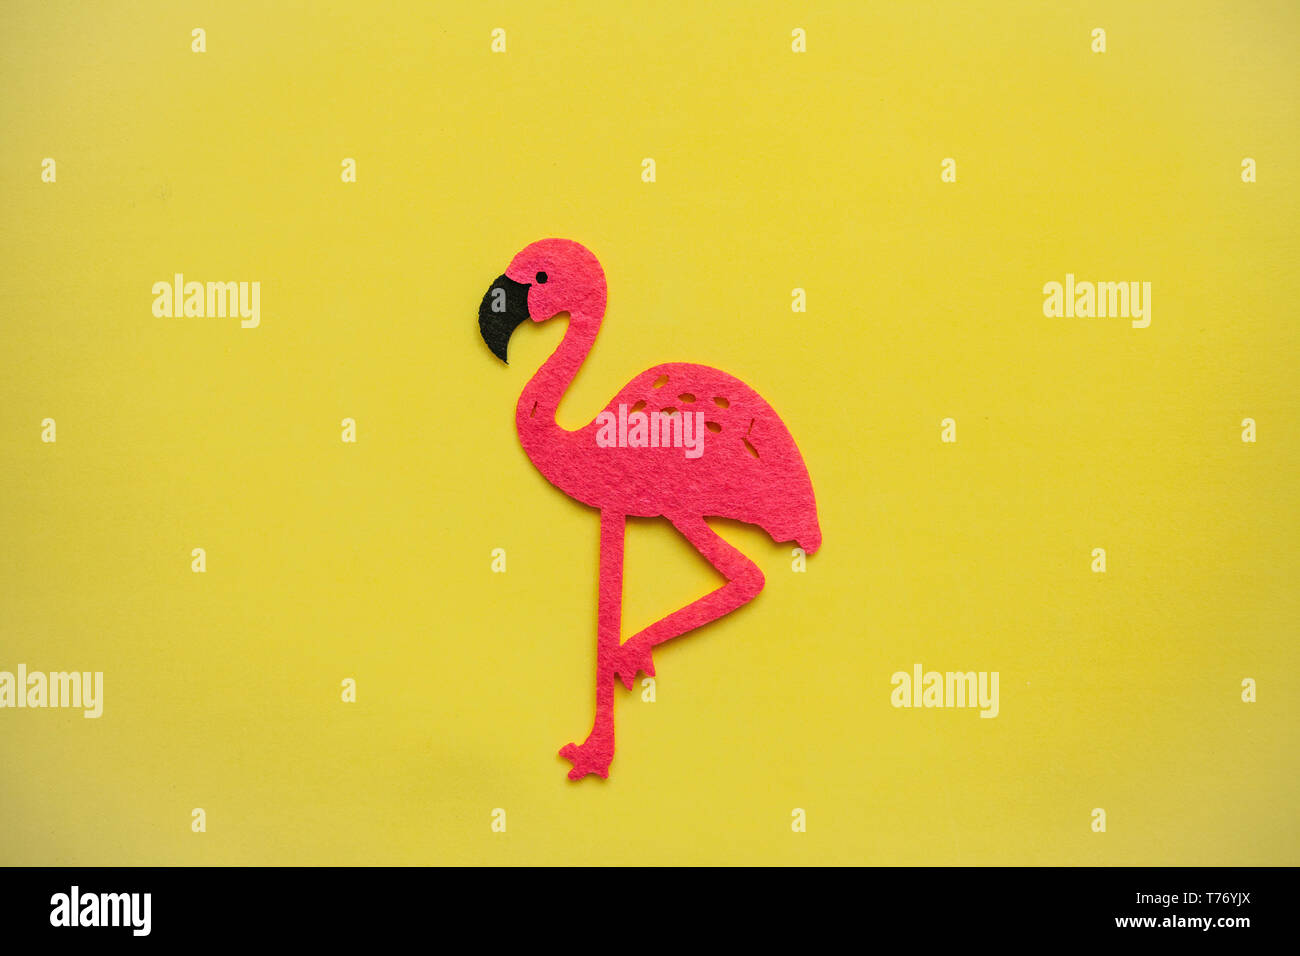 Felt pink flamingo on a yellow background in minimal style. - Stock Image